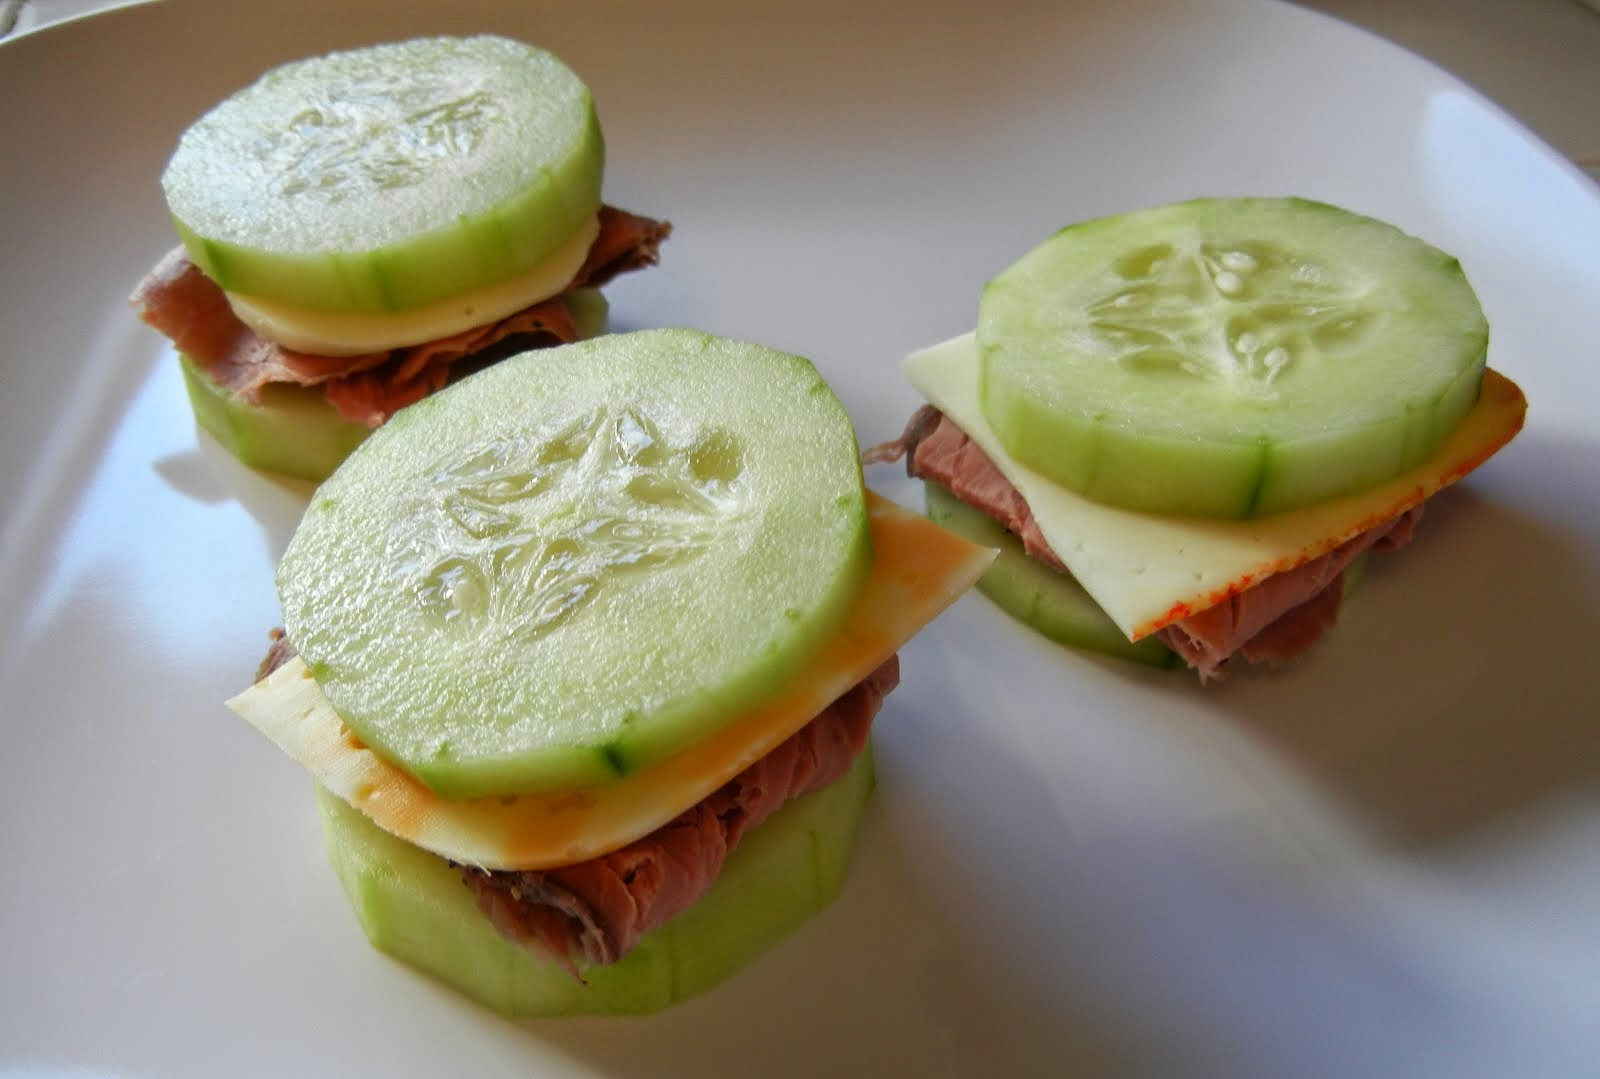 Cucumber%2BSandwiches%2BRB%2BCheese Weight Loss Recipes Cool Eats   Foods to eat in yet another heat wave